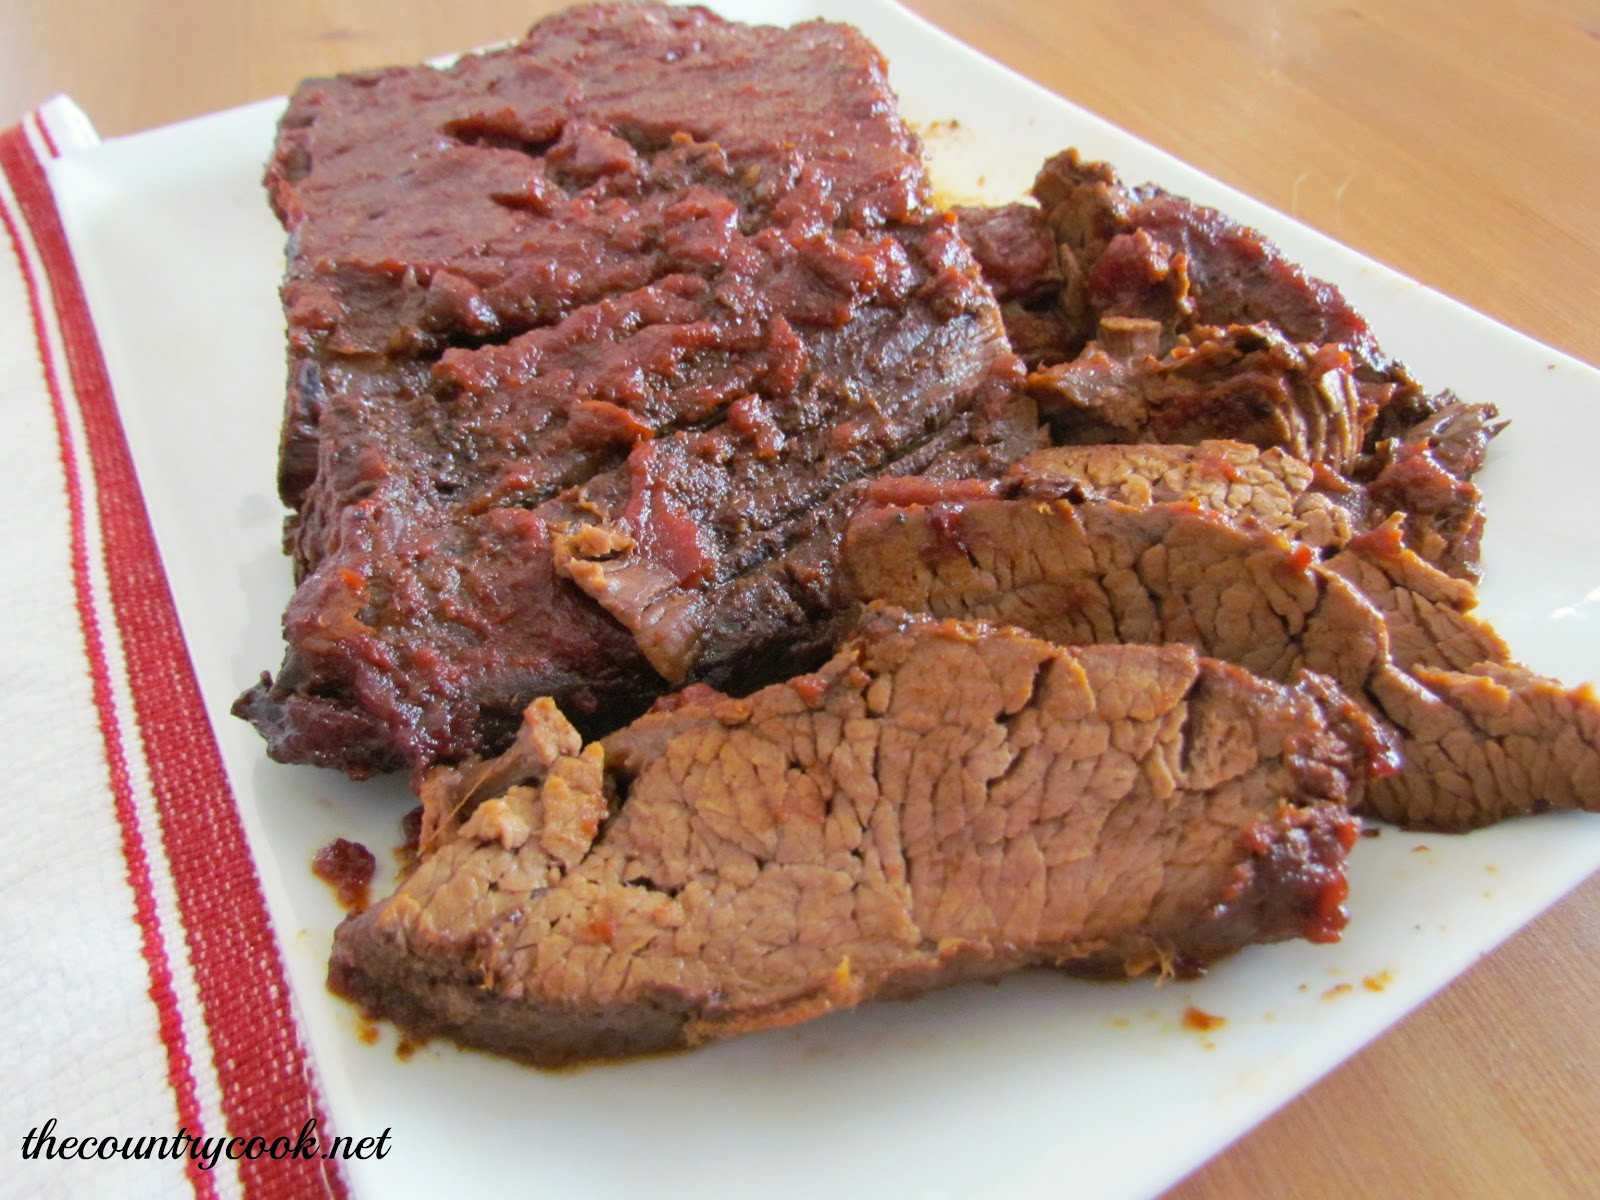 Crock Pot Beef Brisket  Crock Pot BBQ Beef Brisket The Country Cook